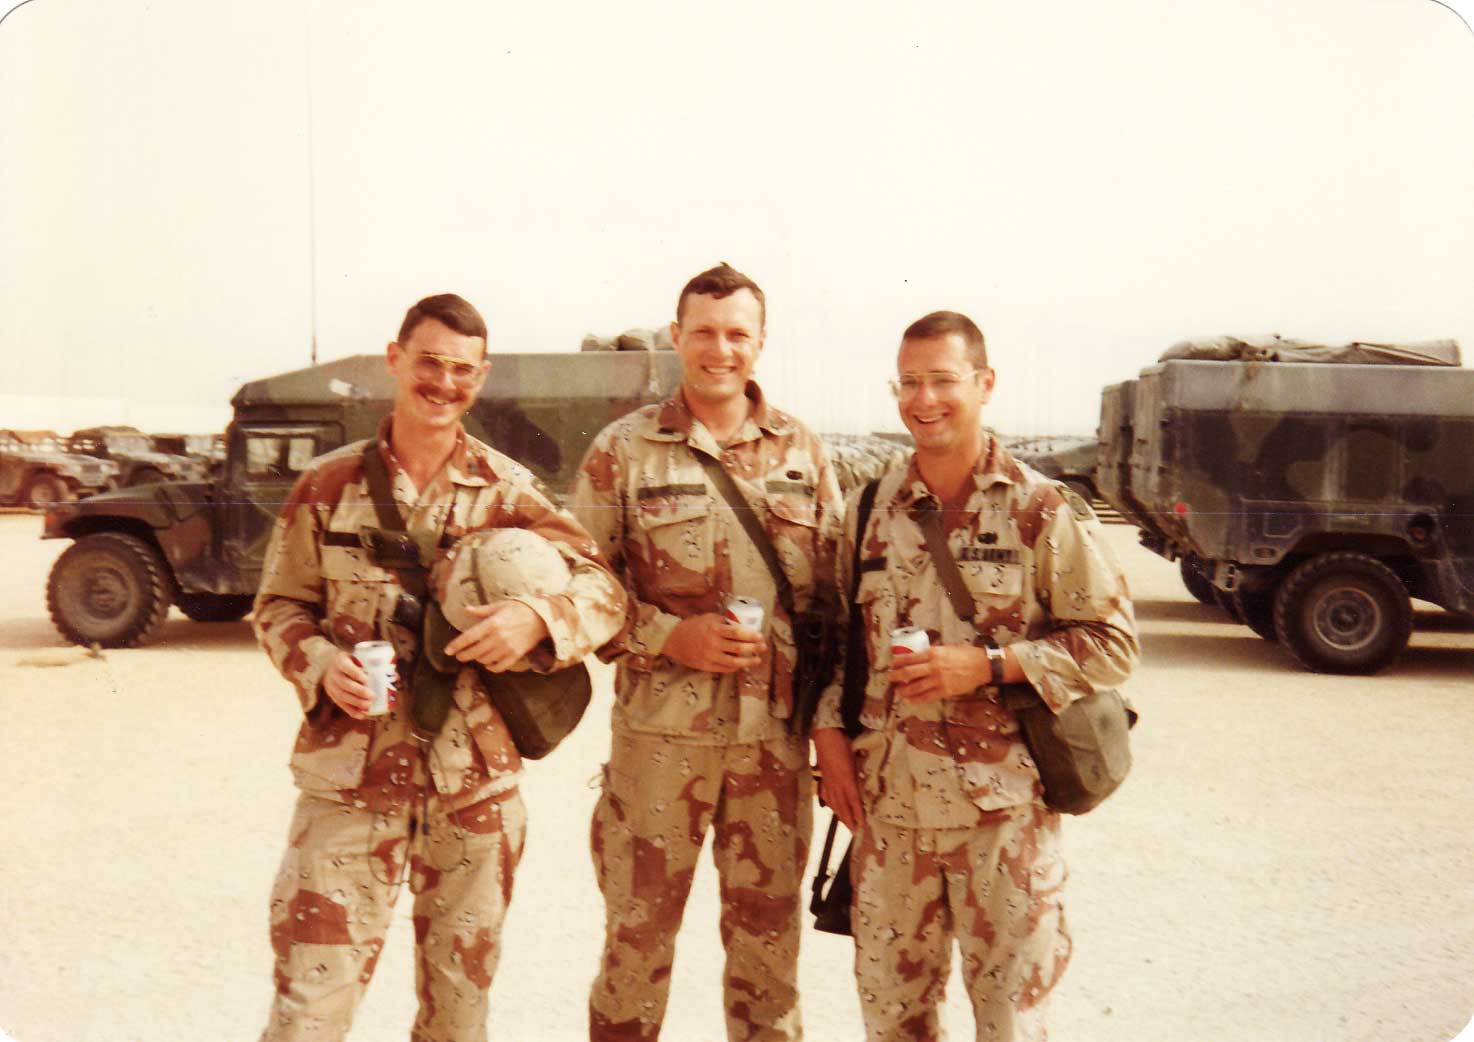 Chief Warrant Officer 2 Jeff Brasfield (battalion physician assistant), First Lieutenant Harry Whitlock (medical platoon leader), and First Lieutenant Mark Stevens (mortar platoon leader), taken on Christmas Day 1990, at Champion Main compound in Saudi Arabia. Photo courtesy of Harry Whitlock